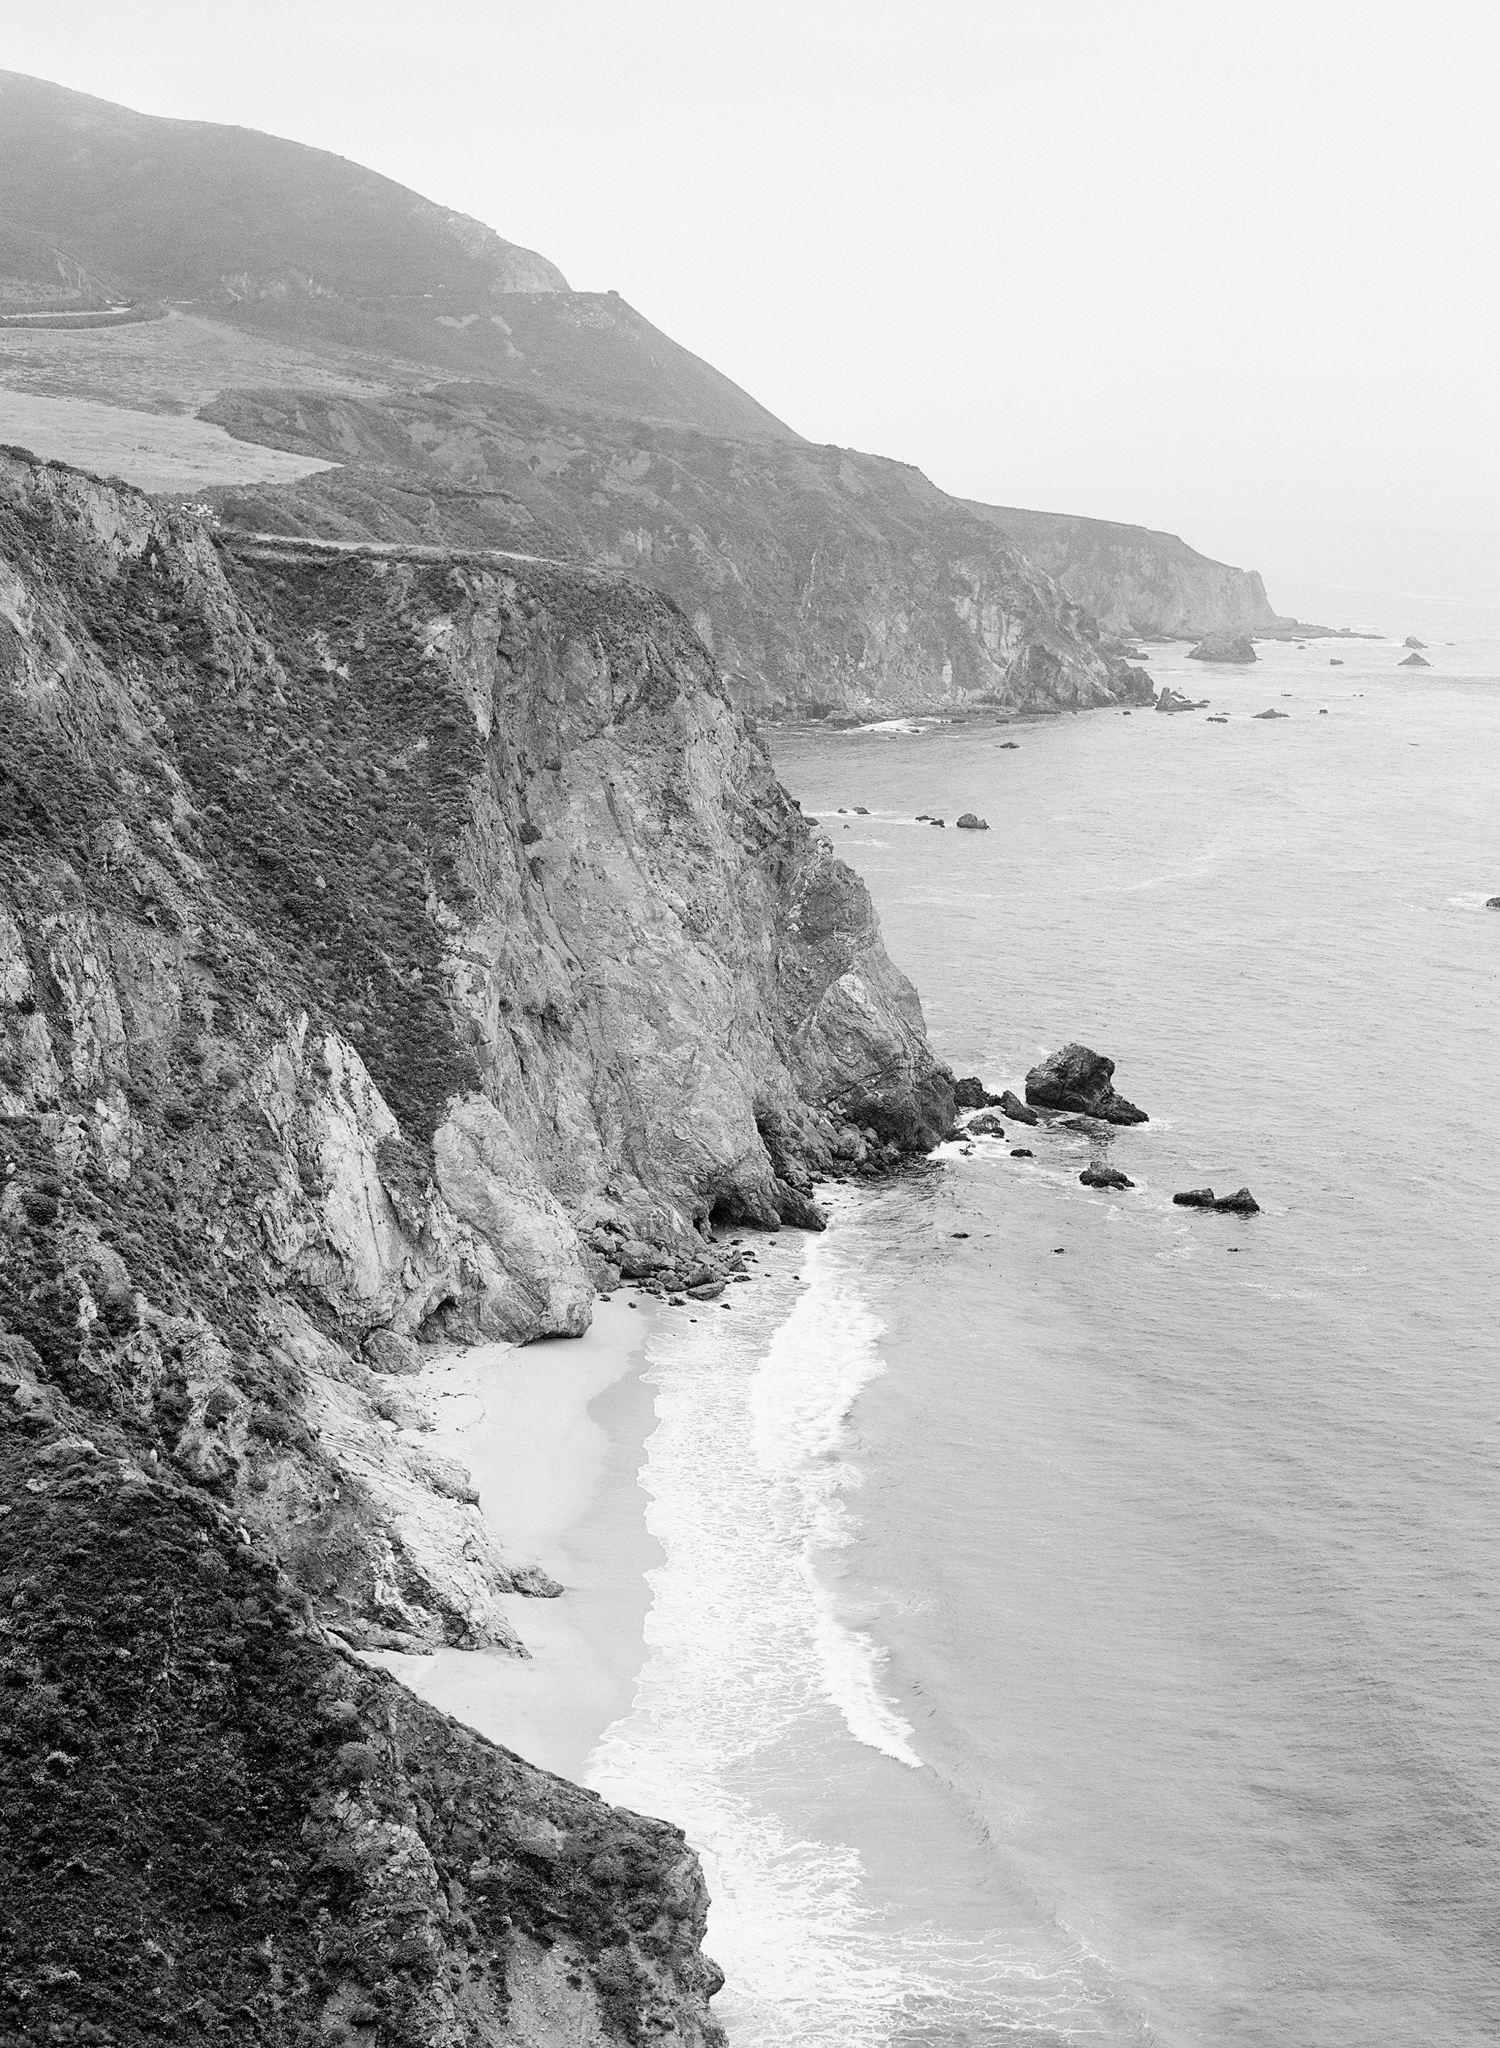 Big Sur Drive by Michelle Cross-1.jpg